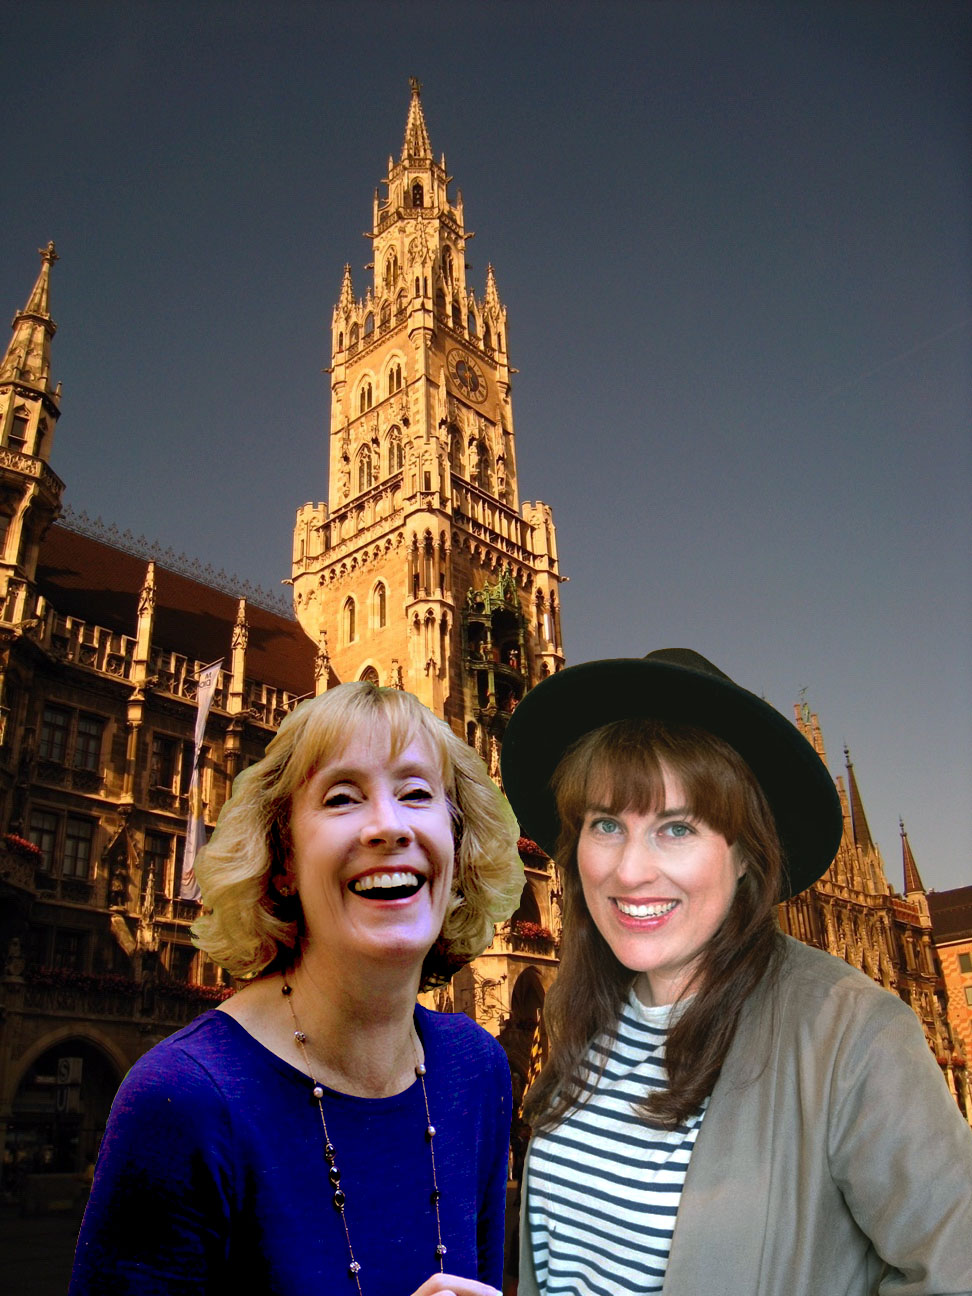 Neues Rathaus with travel buddy Morgan Tarpley Smith—see Glockenspiel in center of tower (Photo courtesy of Pauline Trummel)